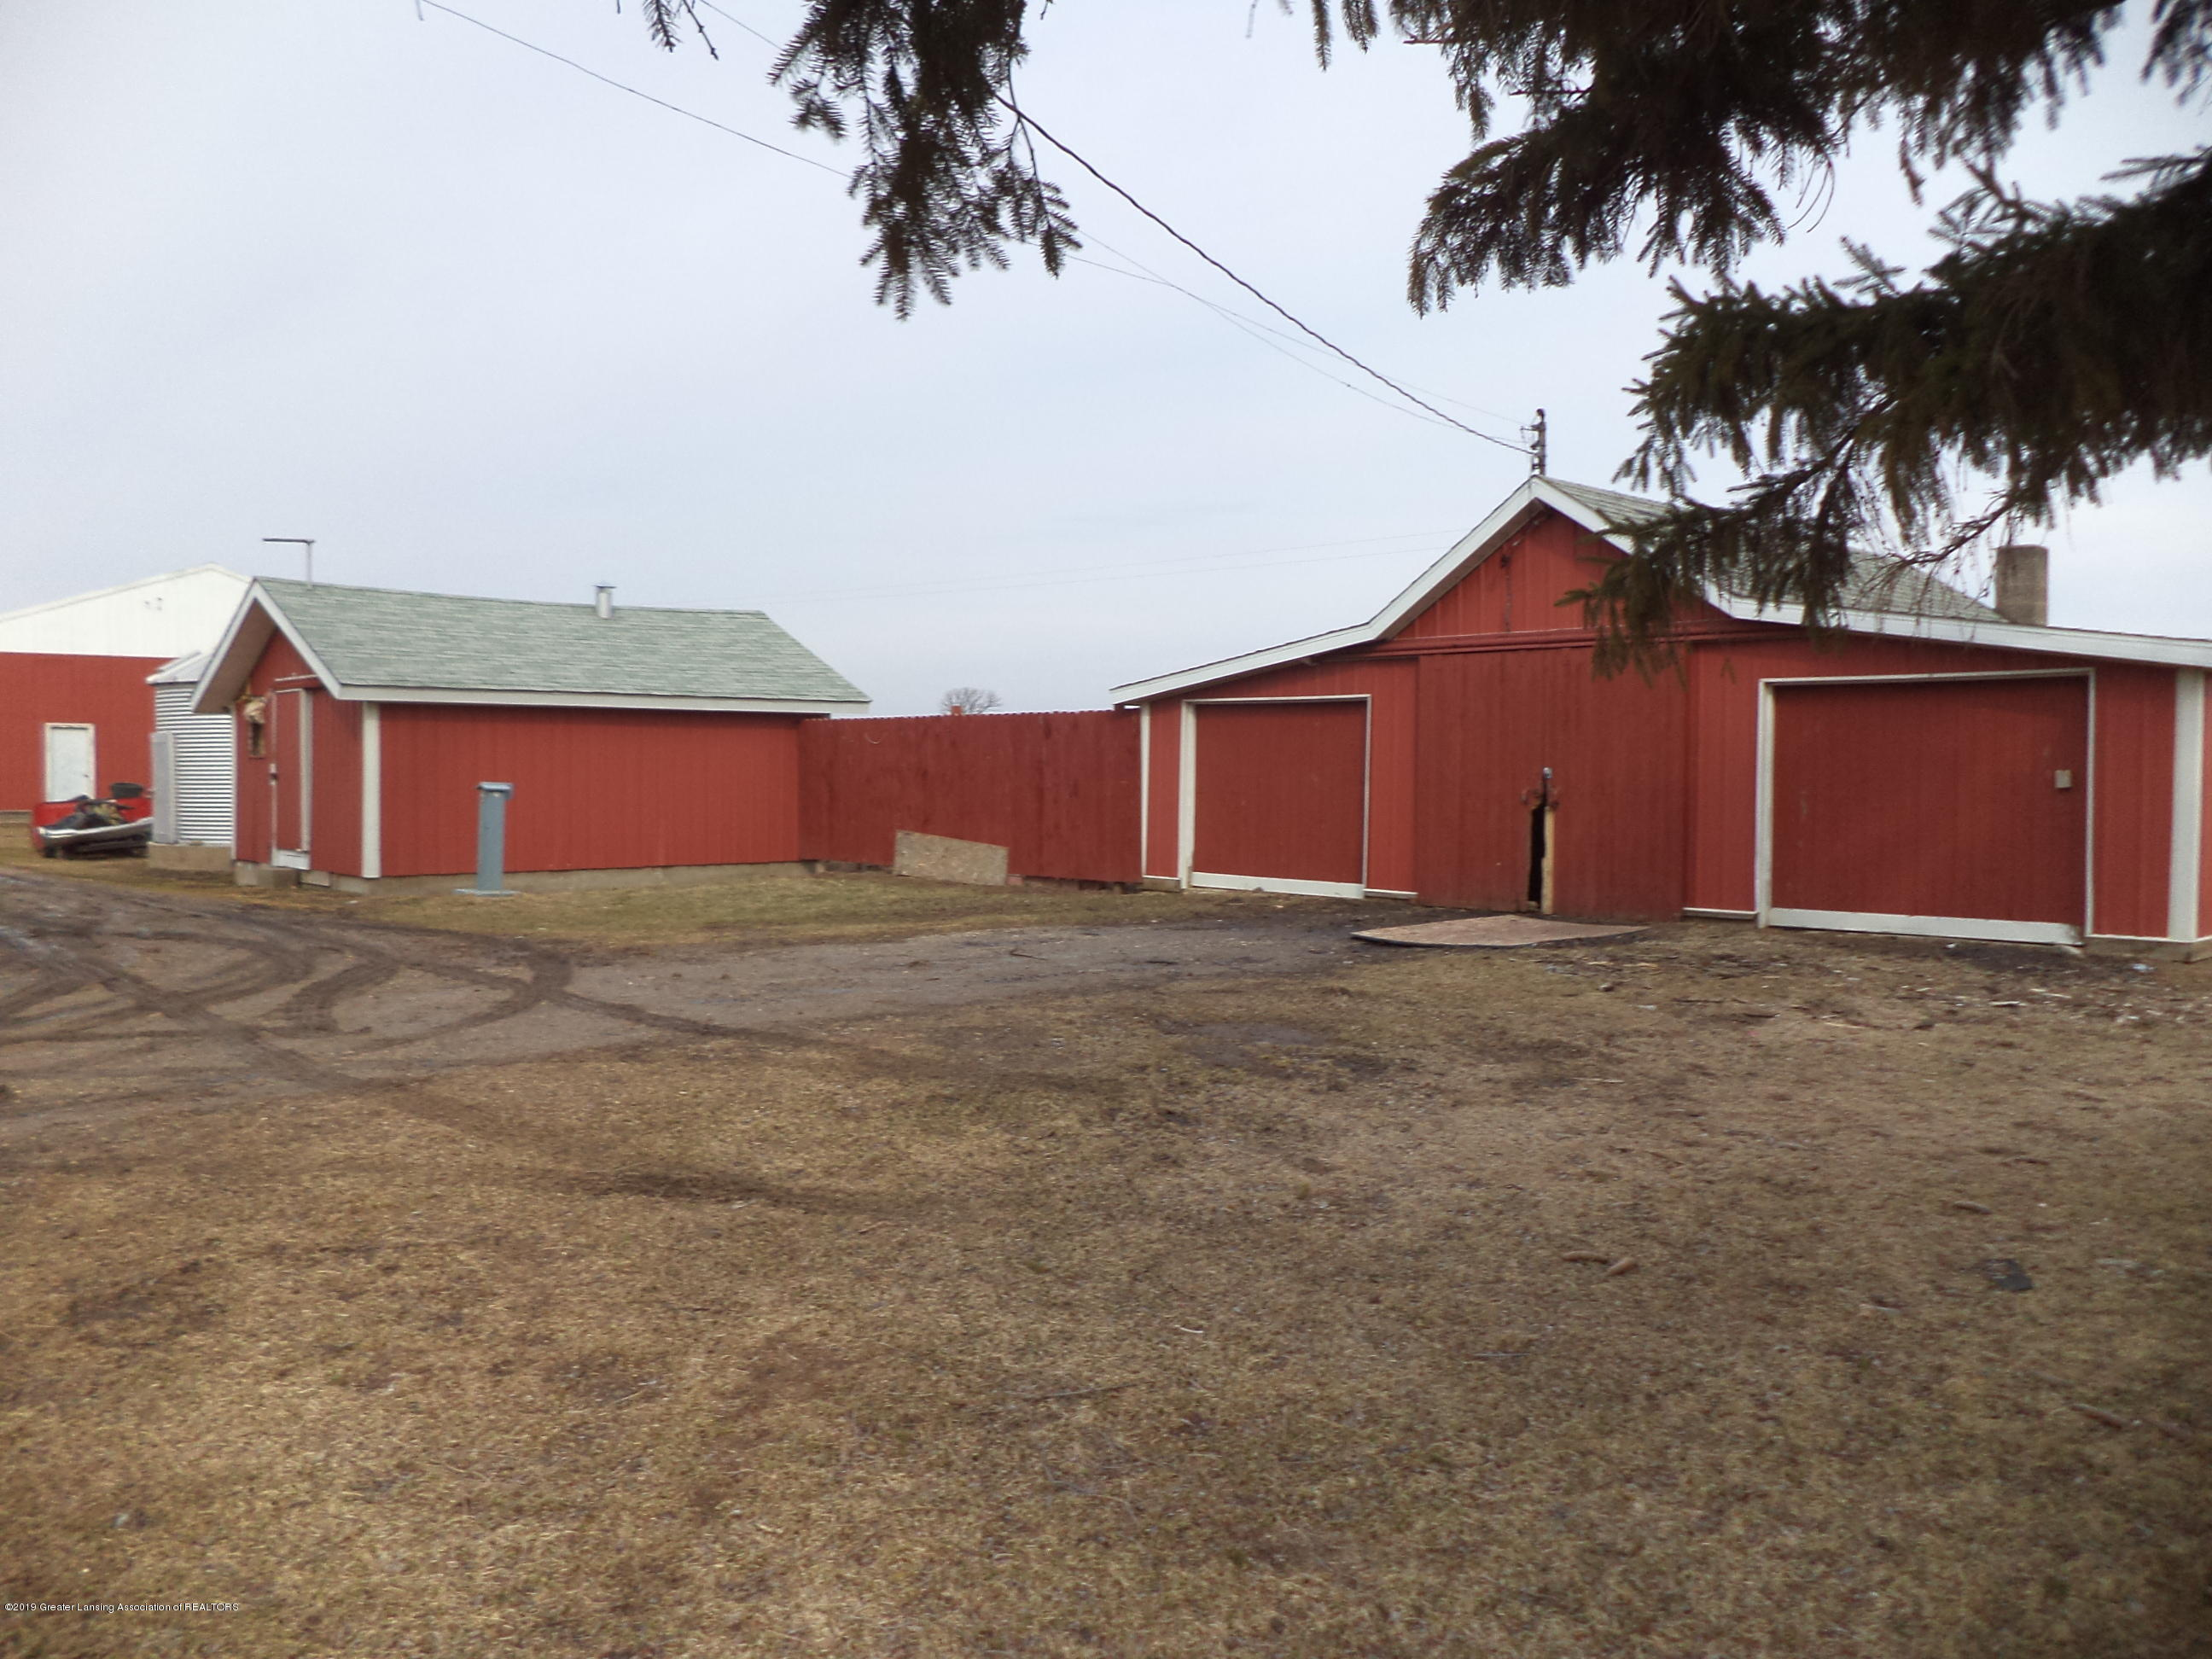 4861 E Parks Rd - View of outbuildings - 25